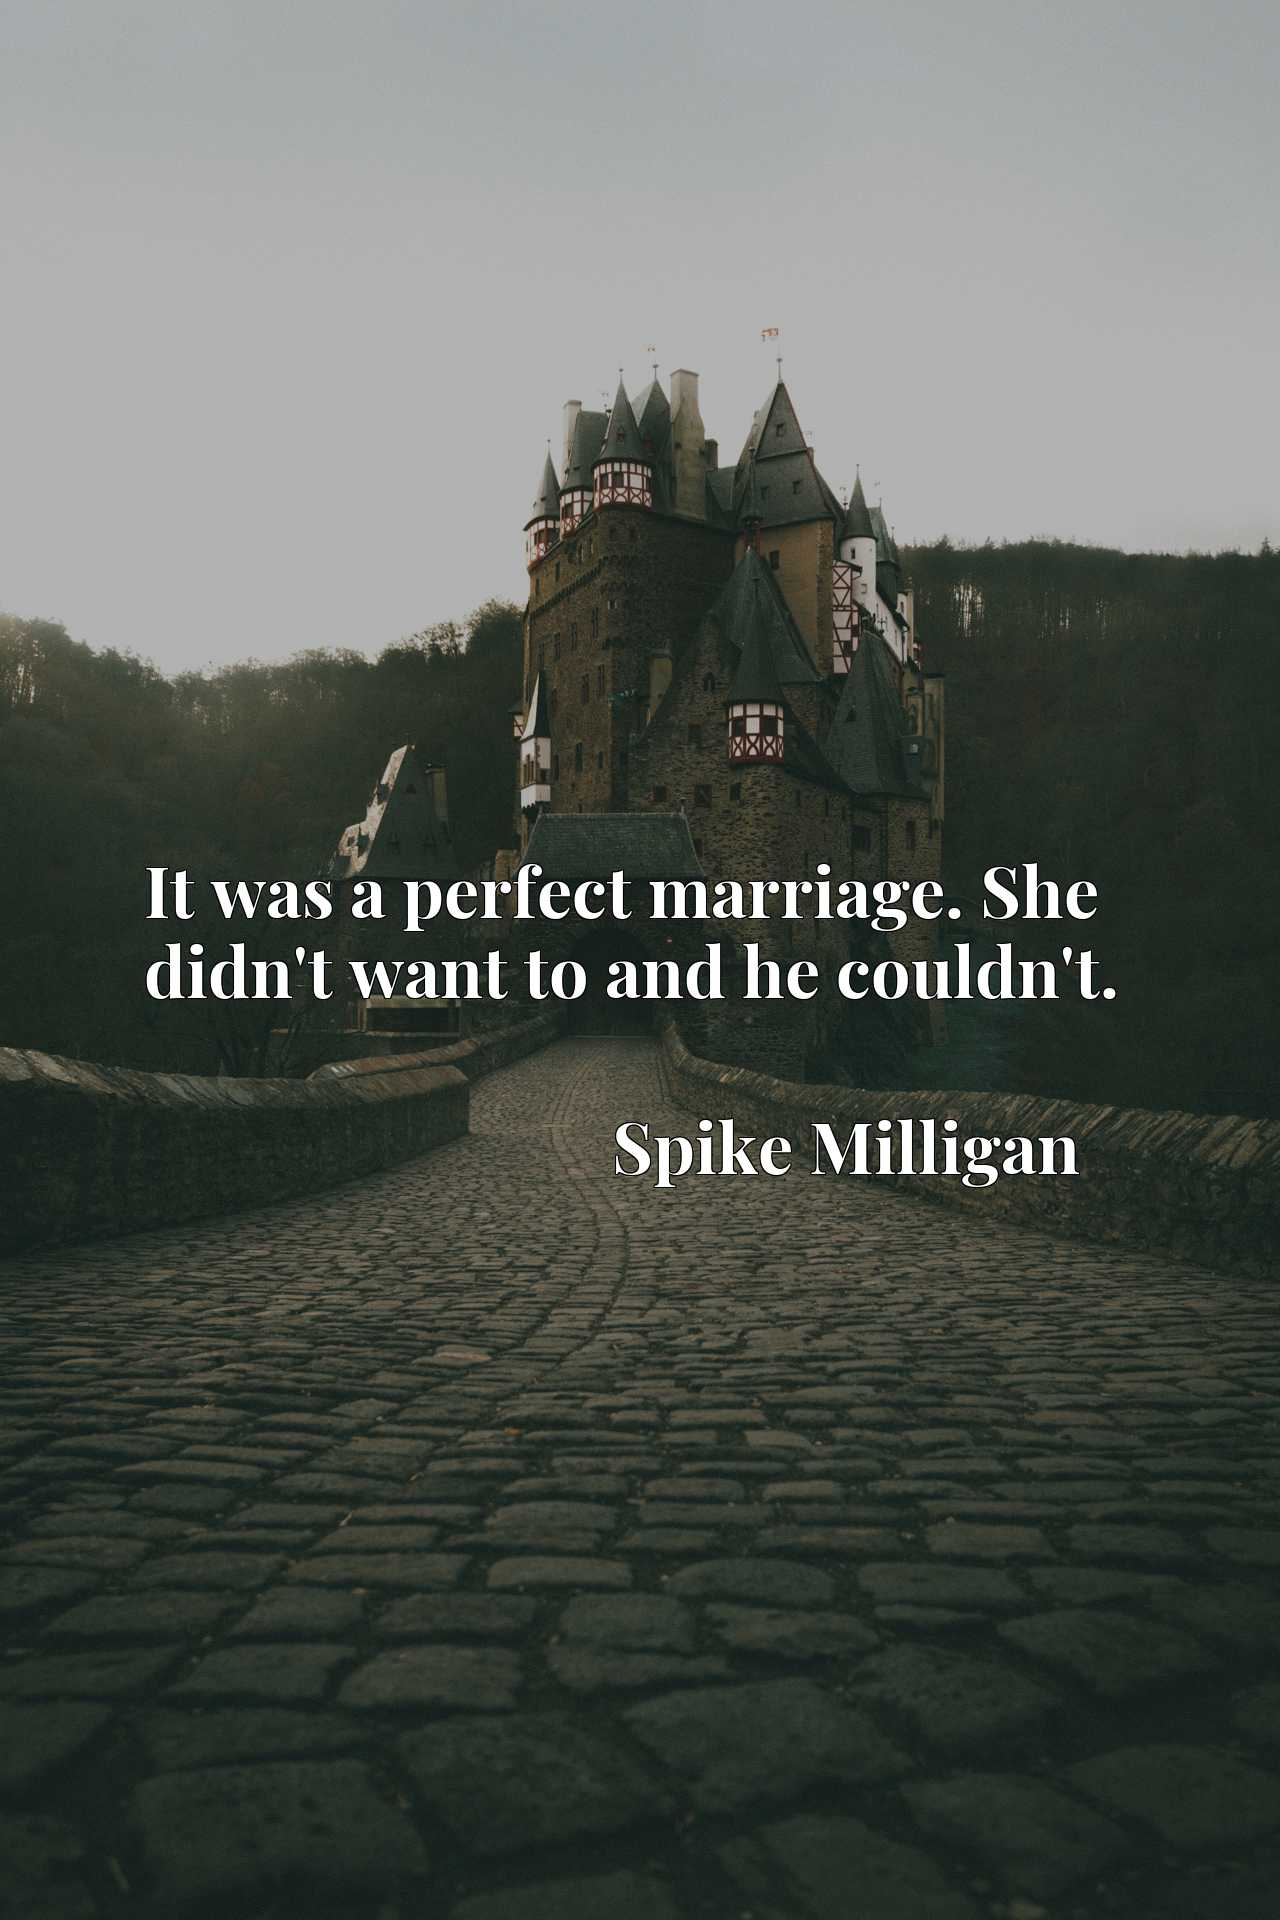 Quote Picture :It was a perfect marriage. She didn't want to and he couldn't.